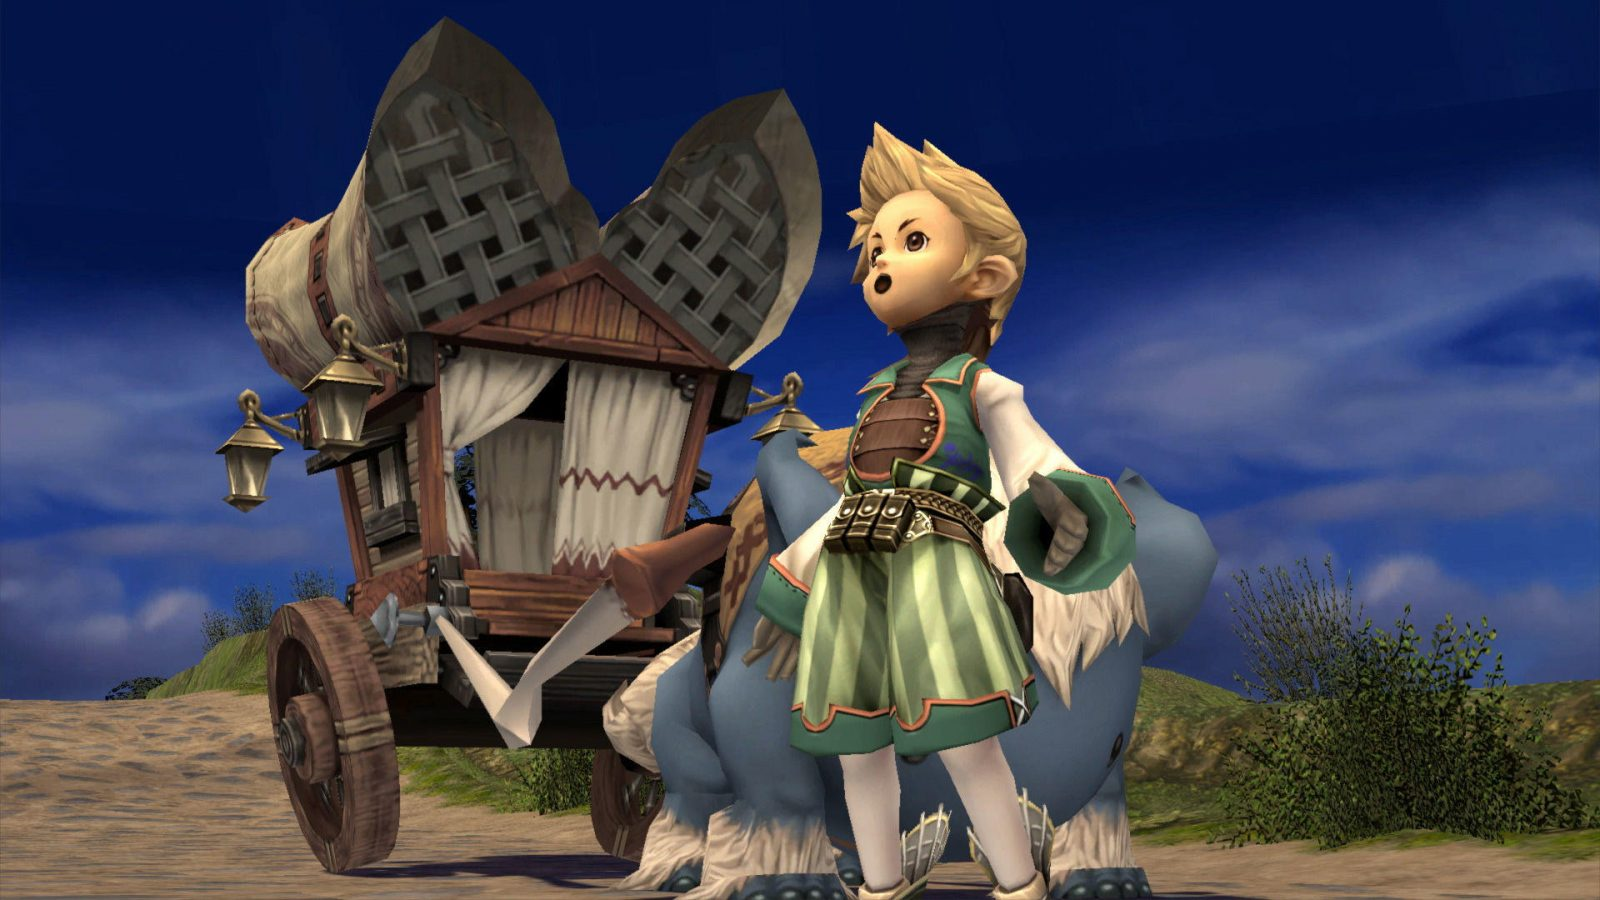 Final Fantasy Crystal Chronicles Remaster Delayed Until Summer 2020